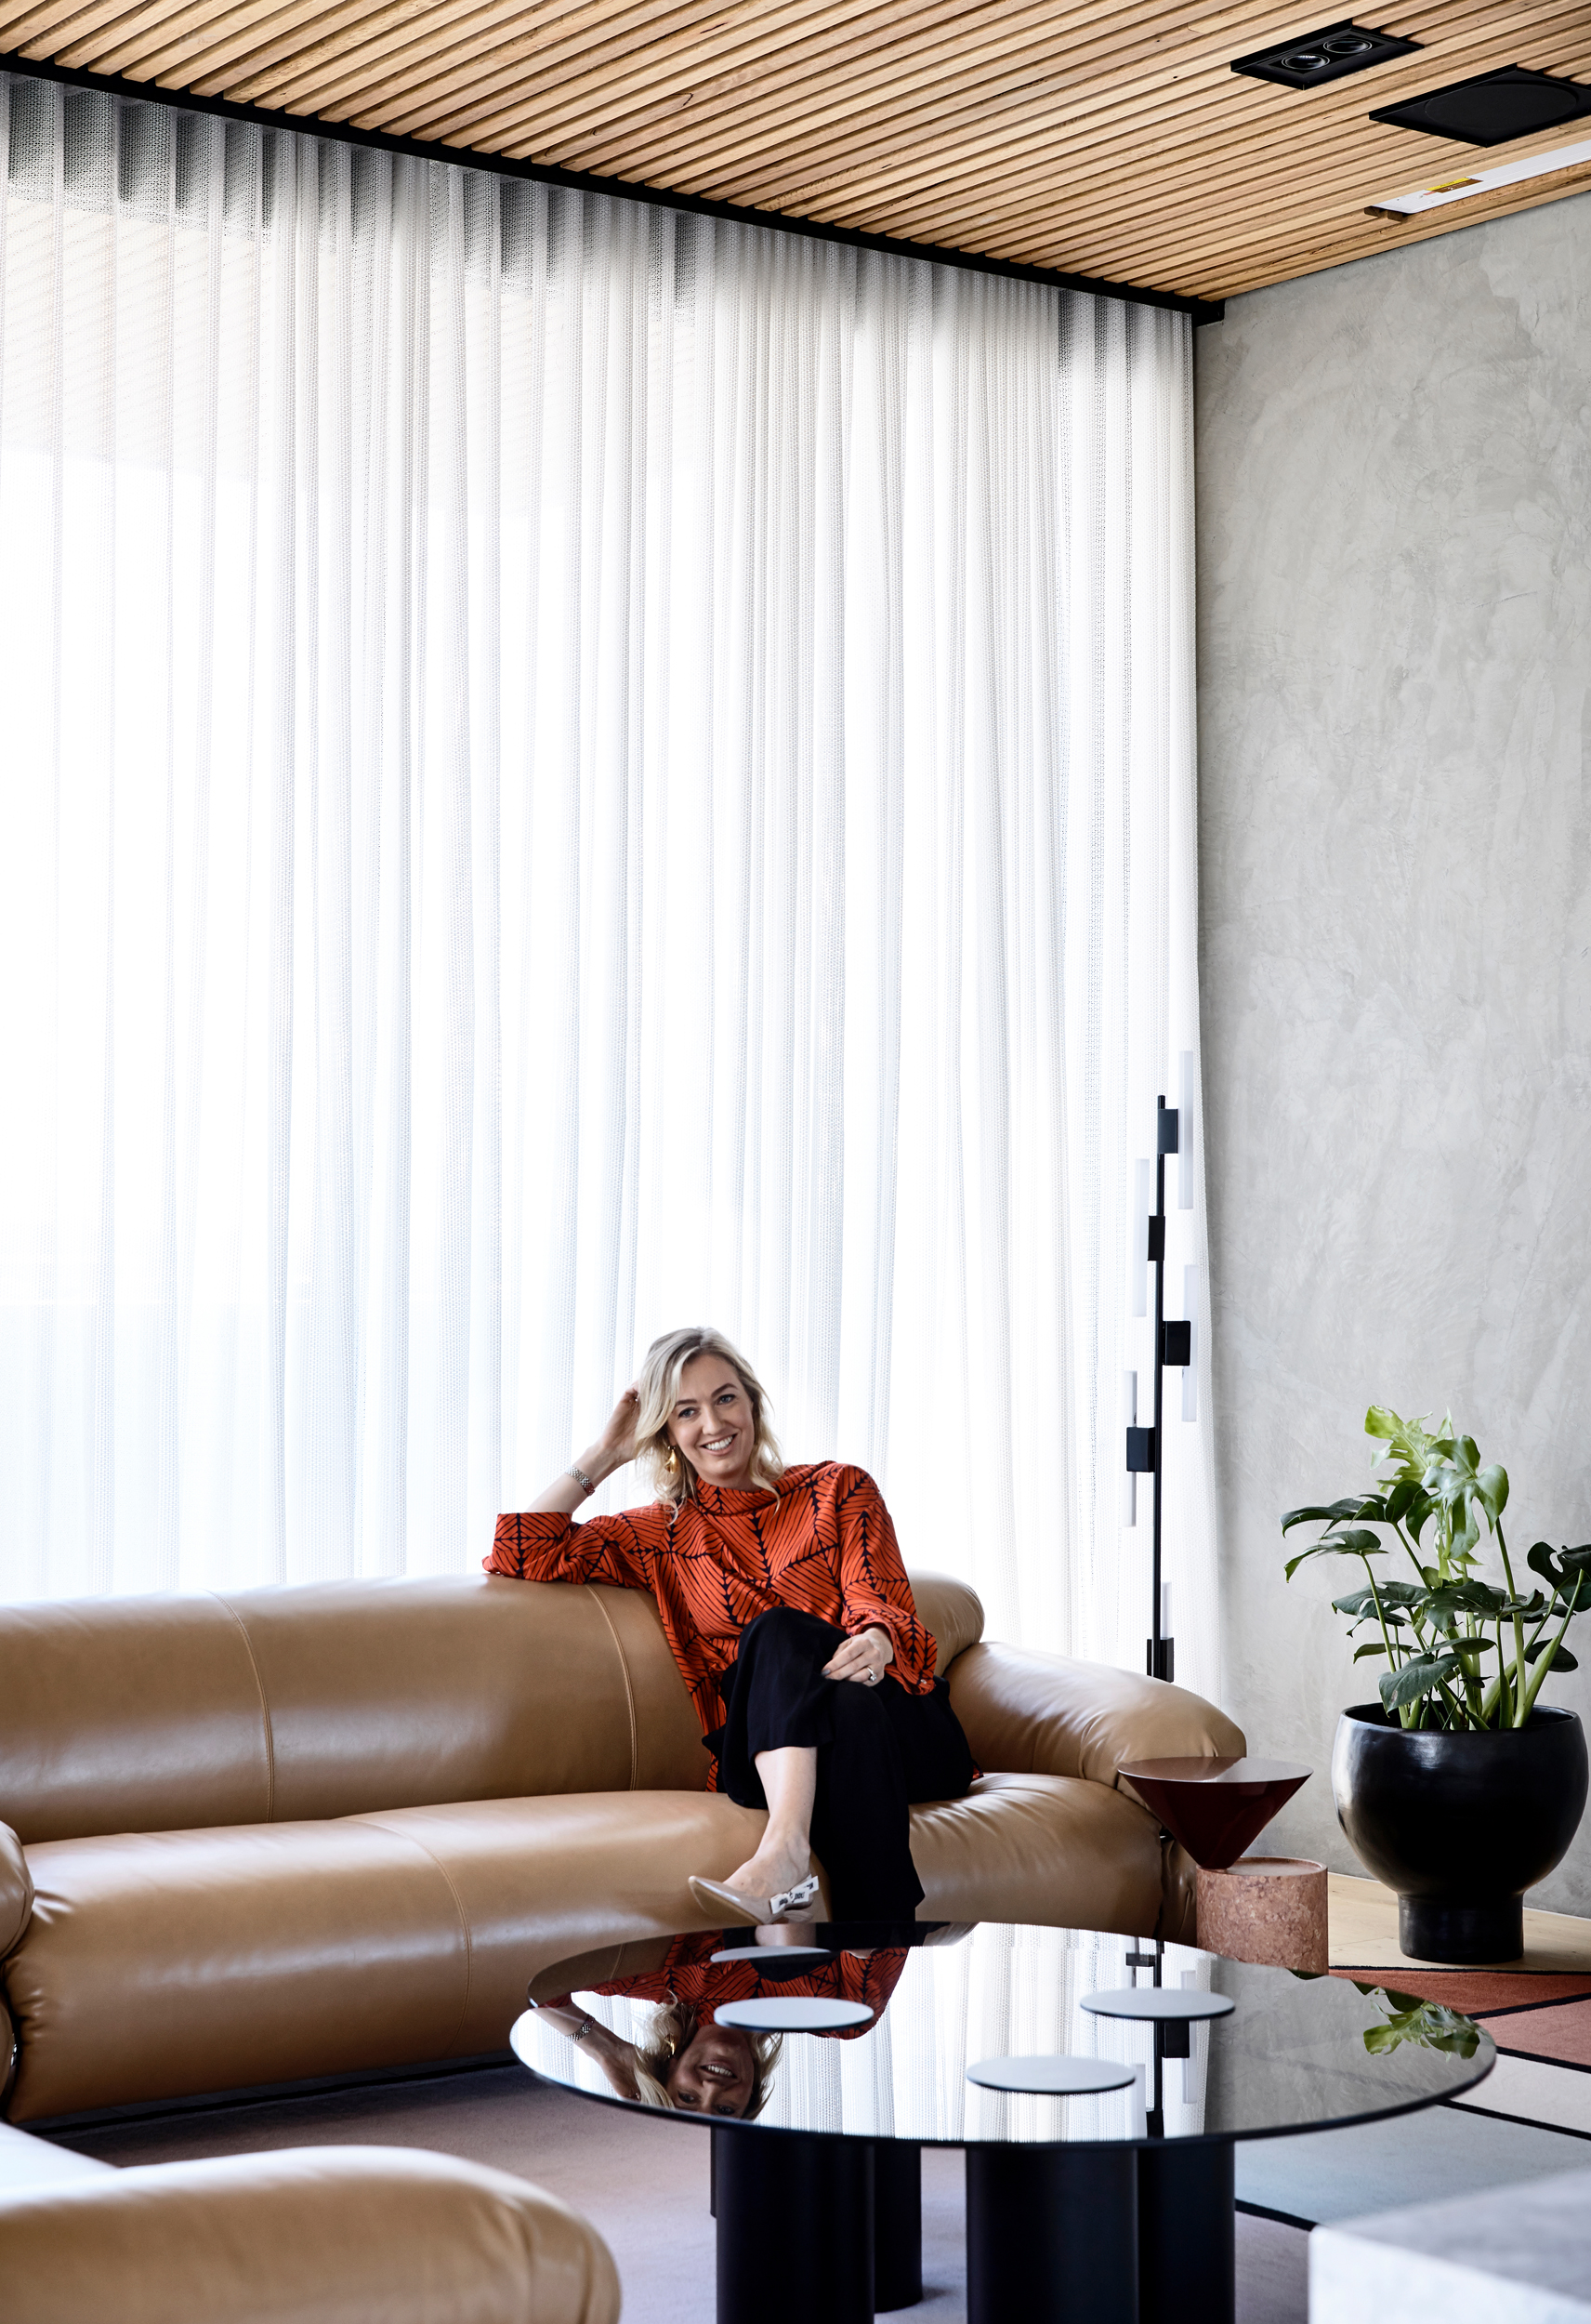 Bec van der Sluys - using both function and form to create beautiful and liveable spaces suited to the clients needs.